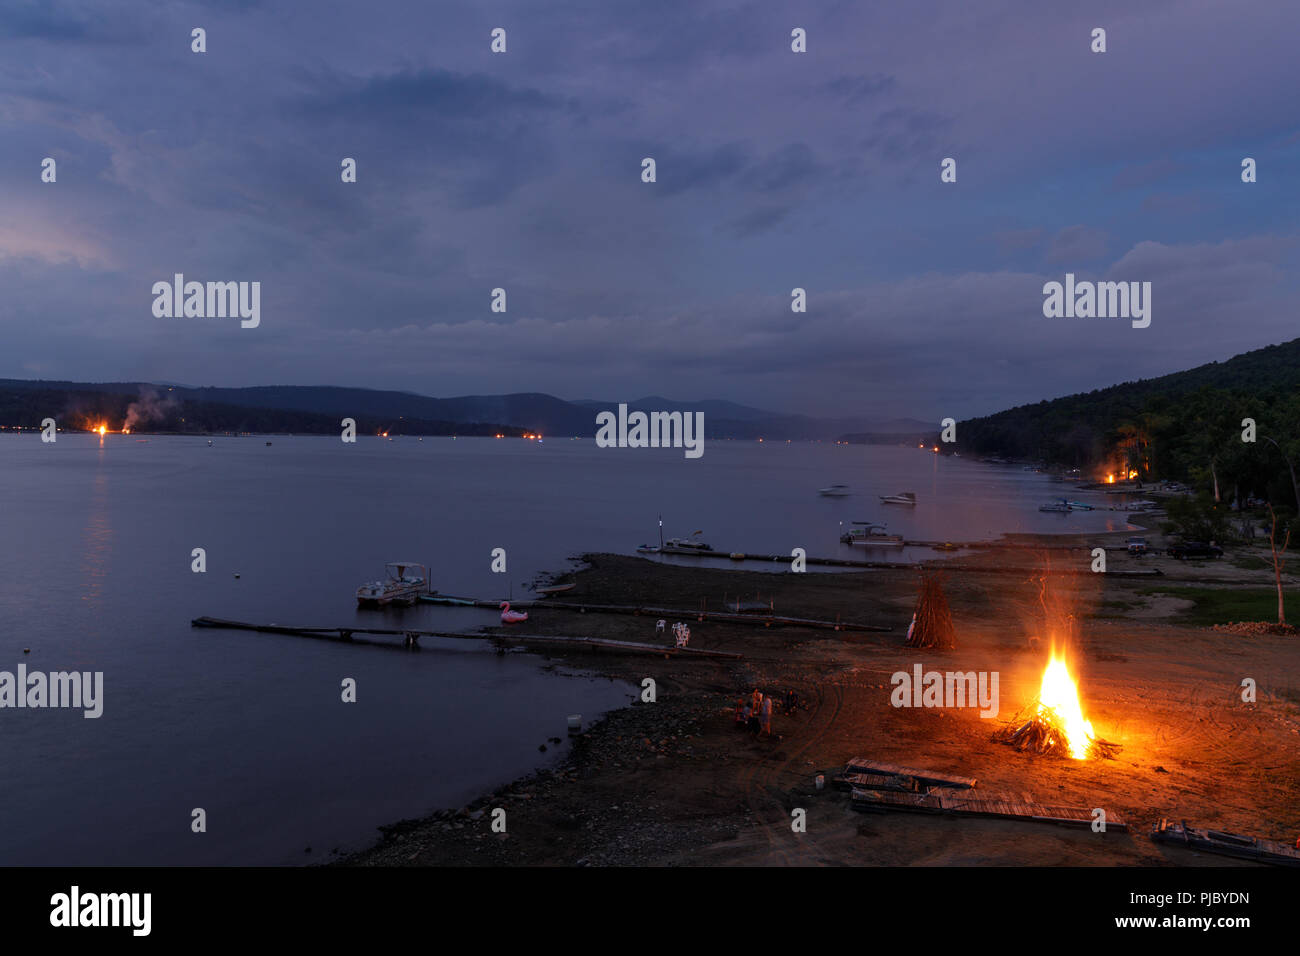 Summer ends with a 'Ring of Fire' on Labor Day weekend, bonfires lit along the shores of Great Sacandaga Lake, southern Adirondacks, New York State. - Stock Image